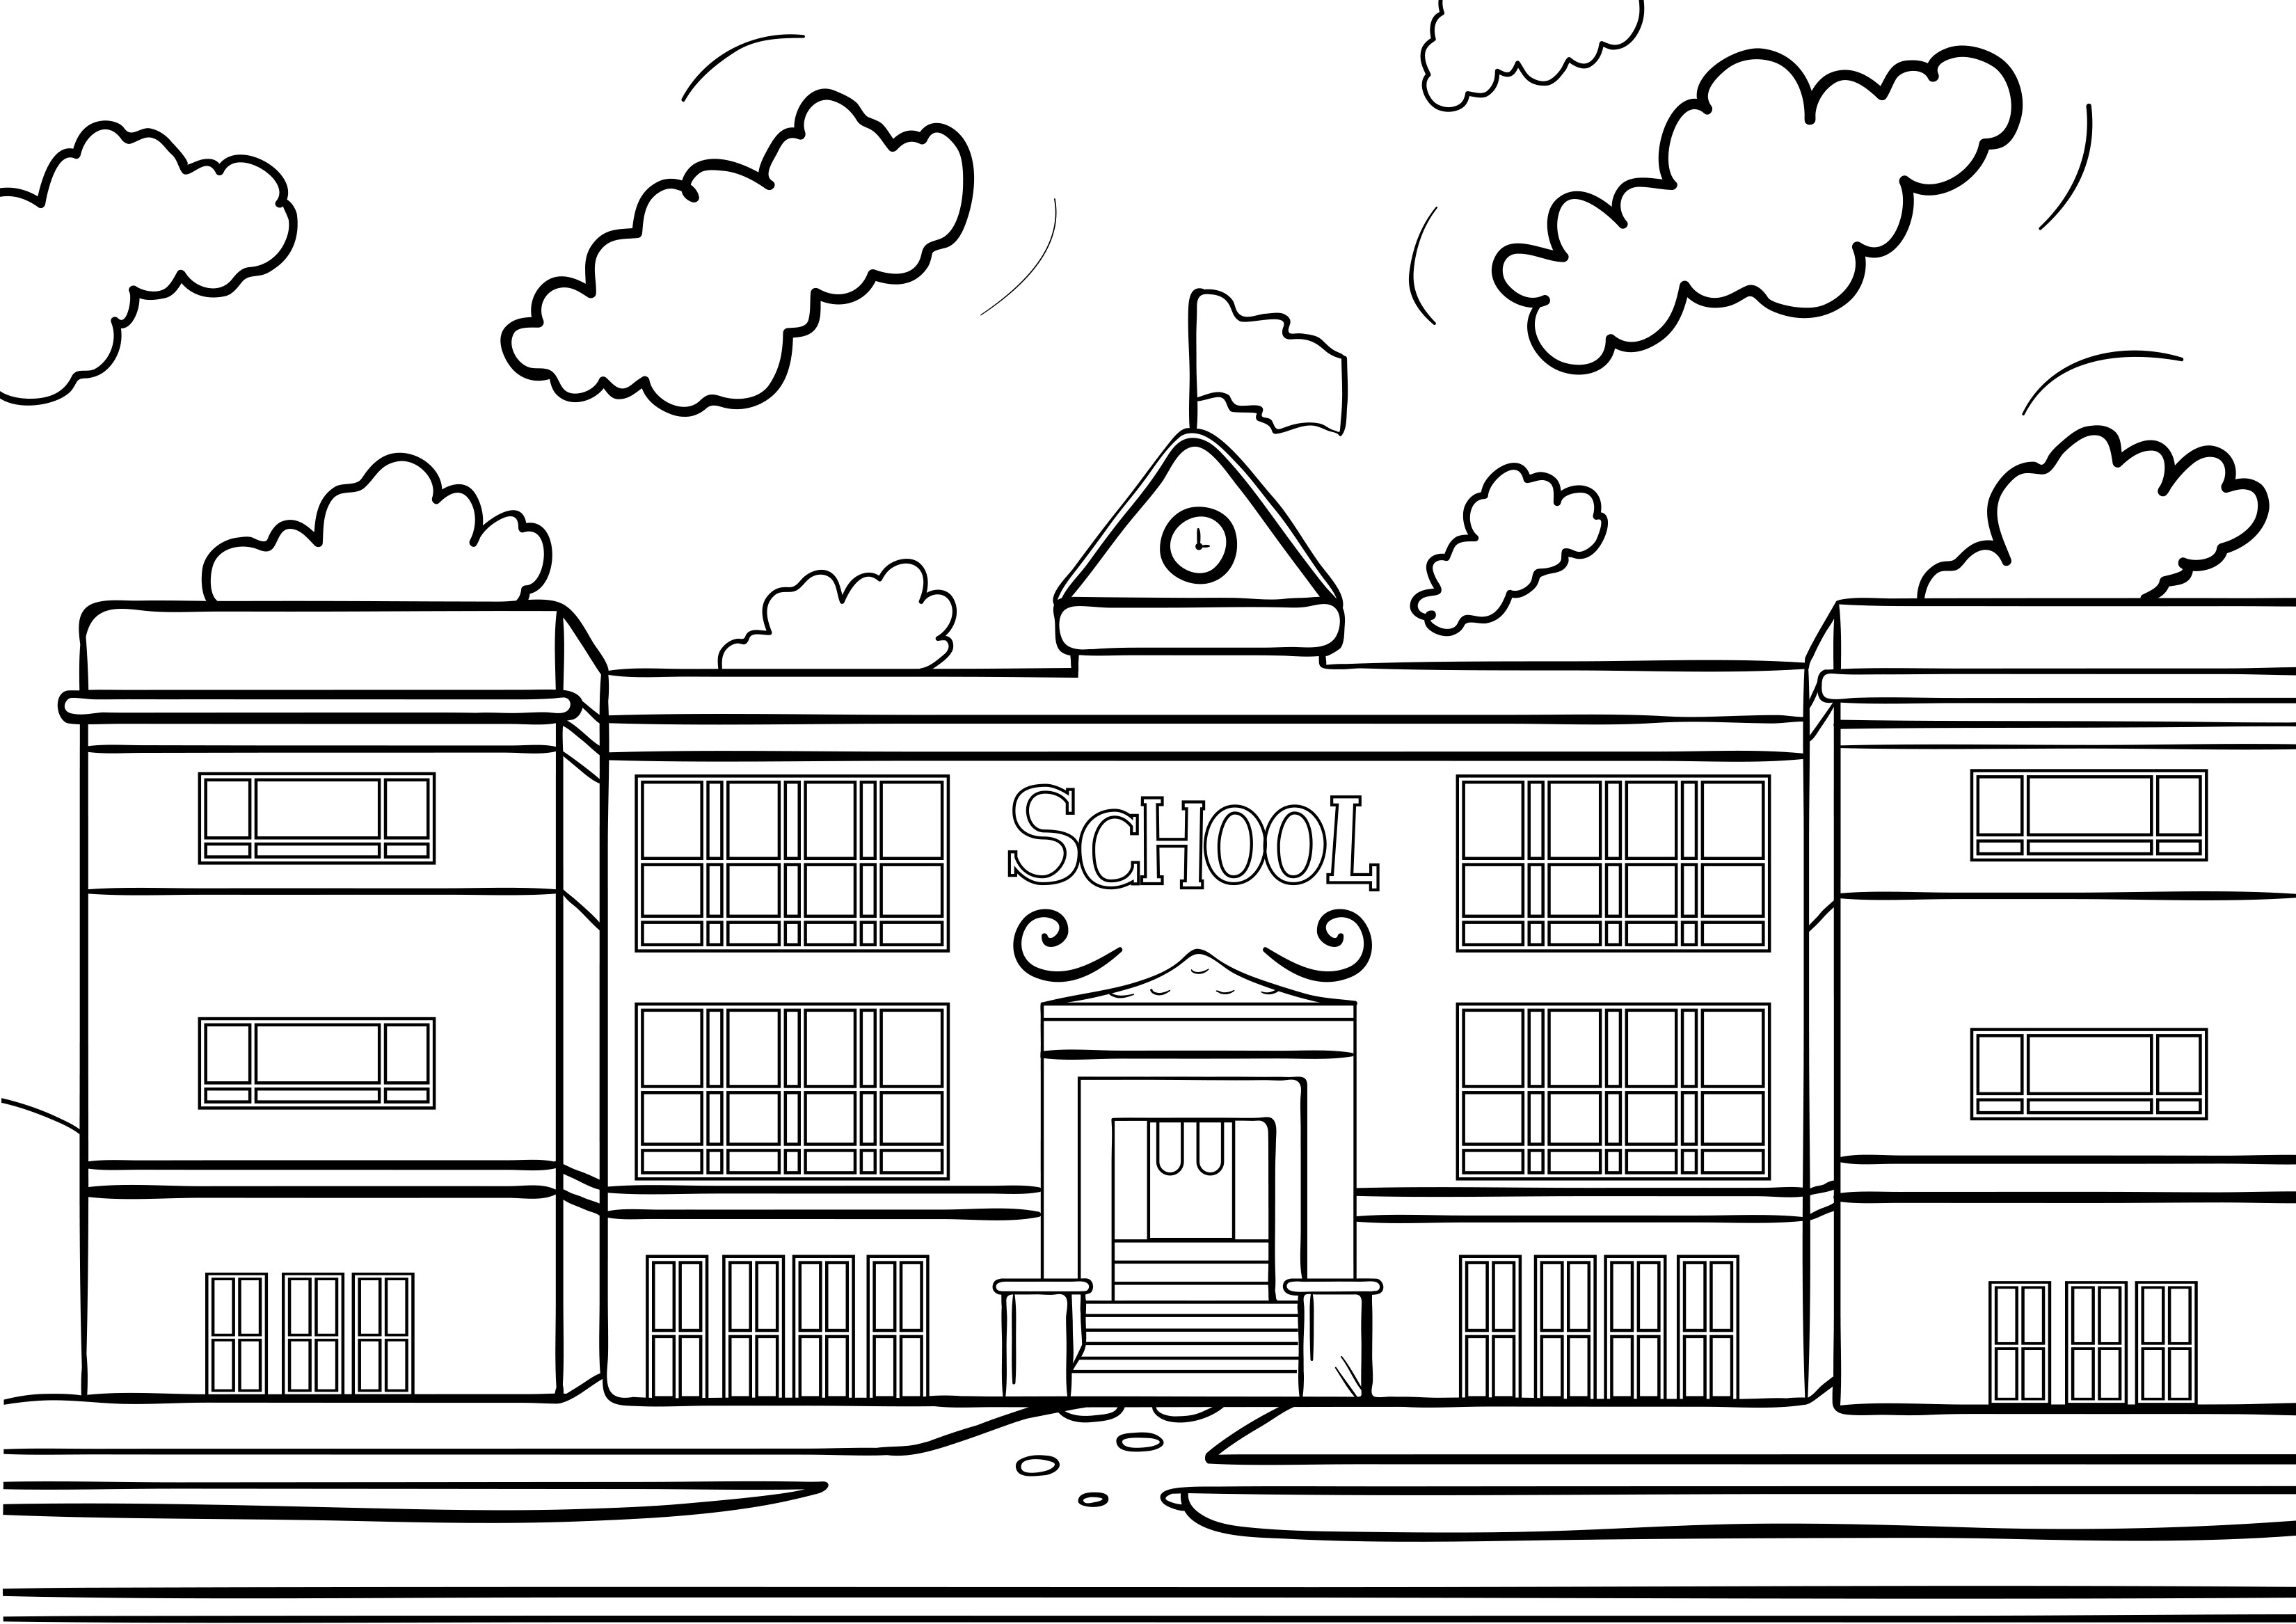 School House Coloring Pages to Print Of School Coloring Pages with 35 Coloring Page A School Small School Collection